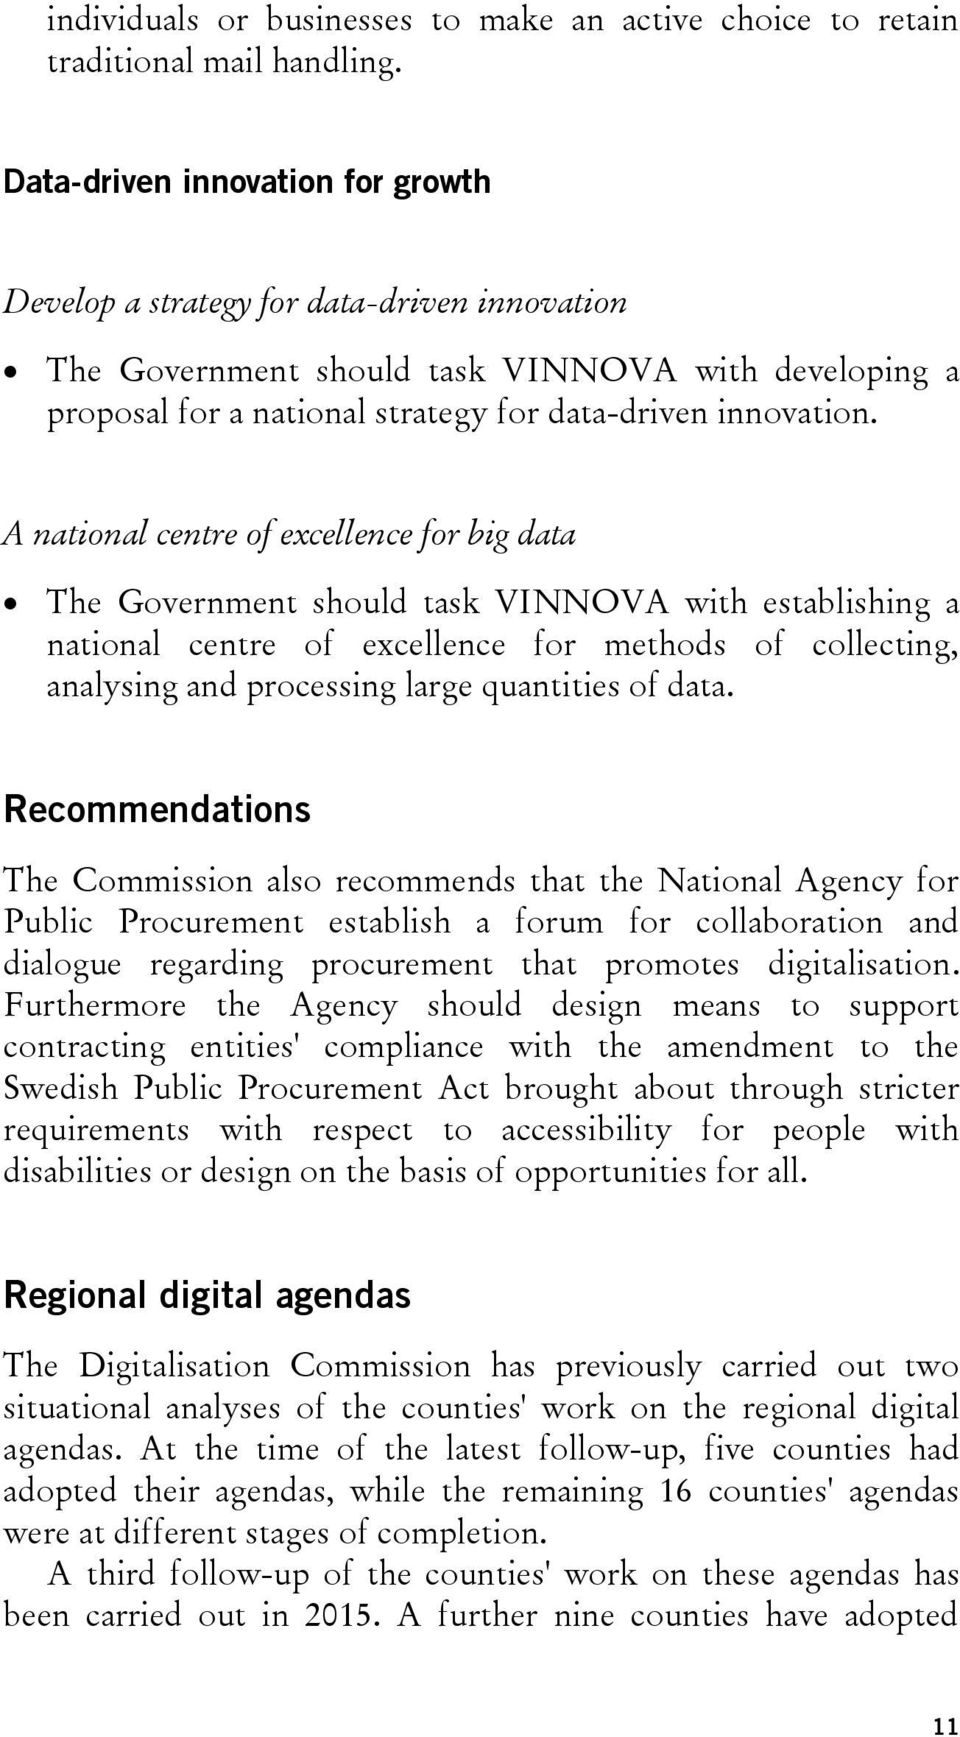 A national centre of excellence for big data The Government should task VINNOVA with establishing a national centre of excellence for methods of collecting, analysing and processing large quantities